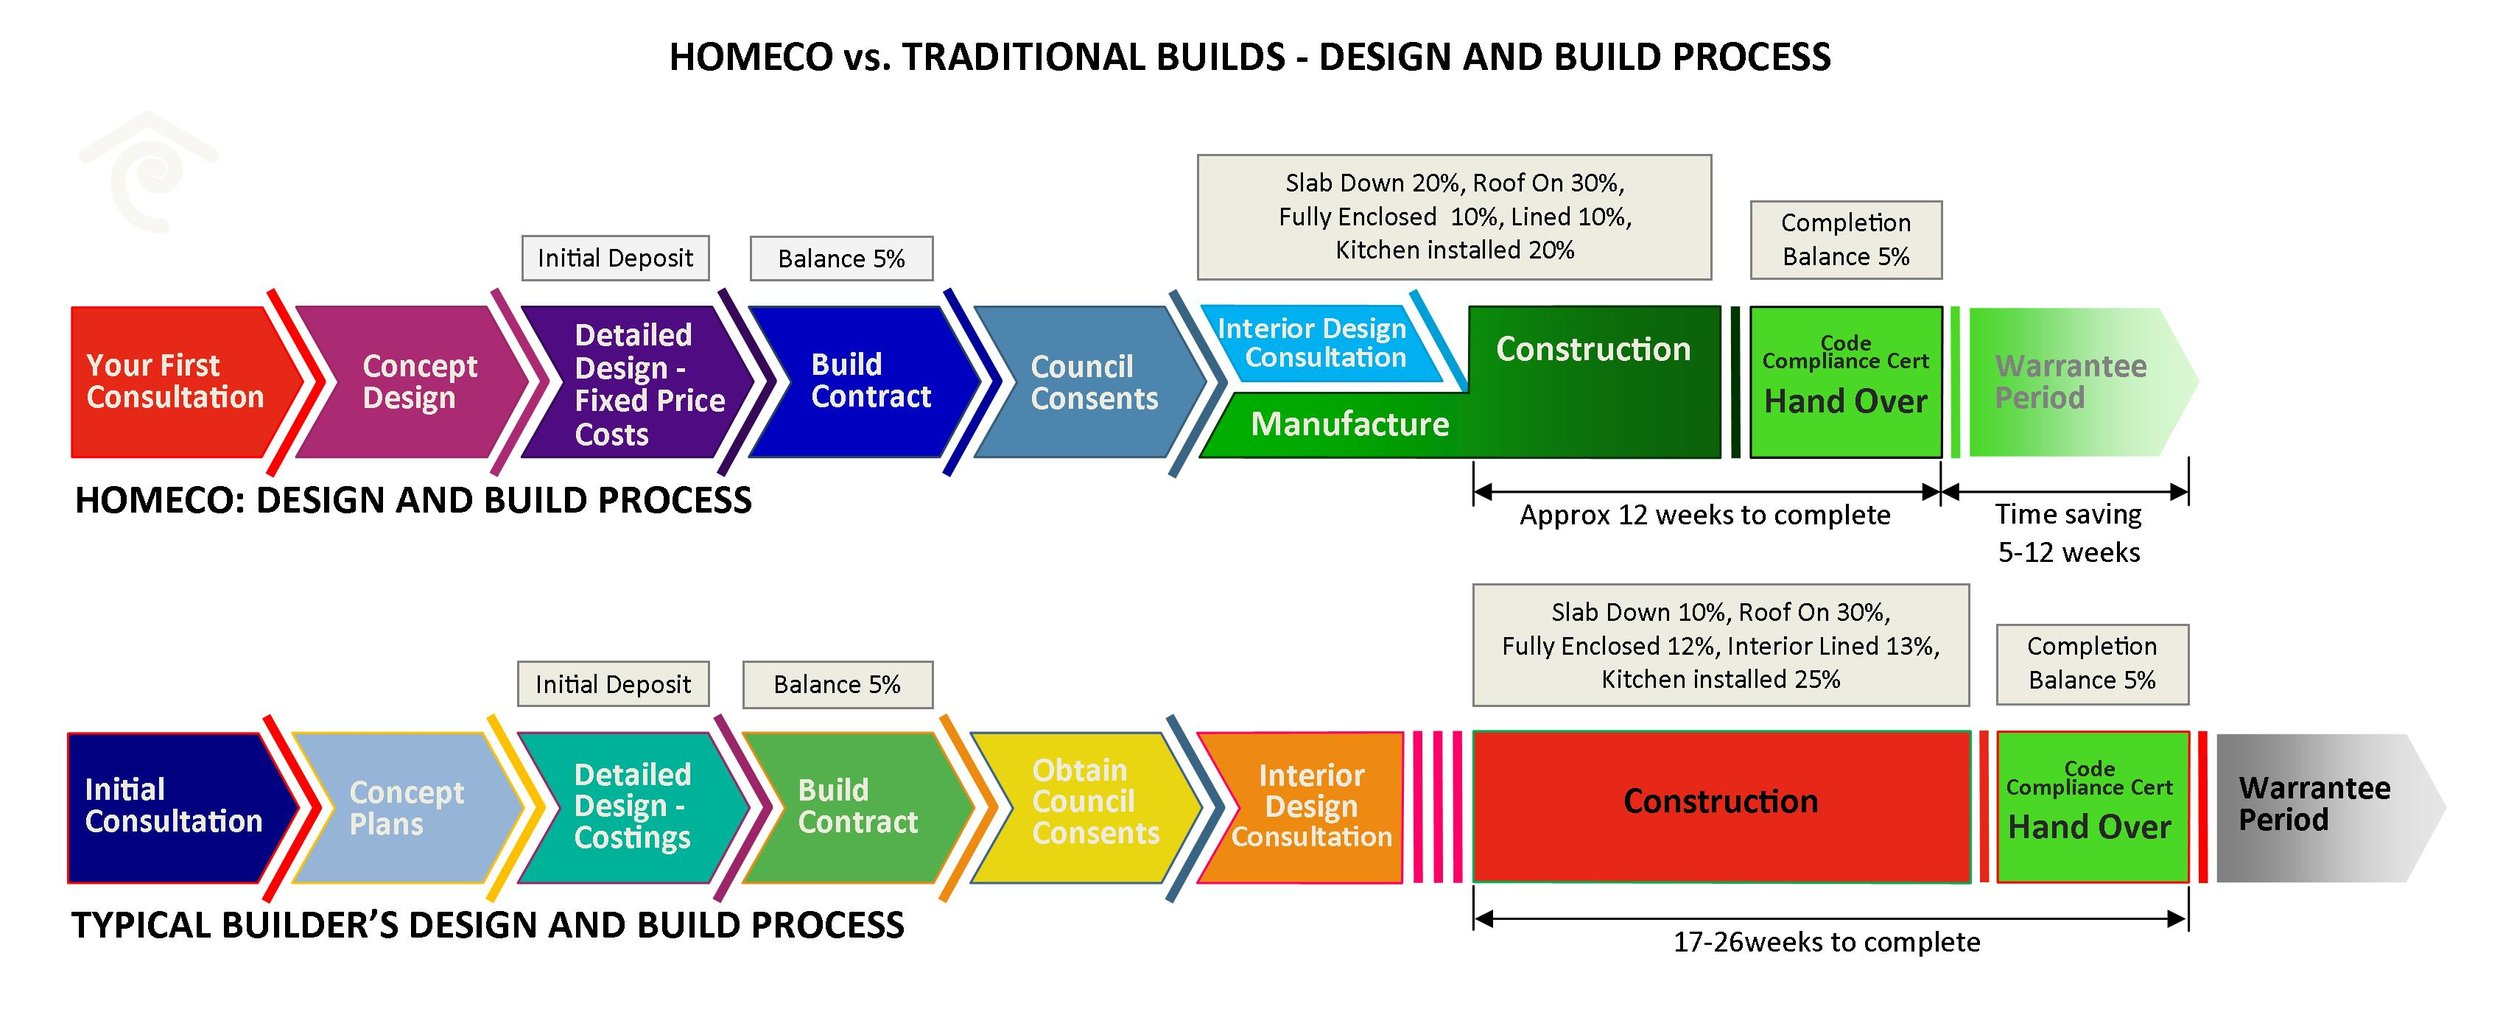 Homeco Building Process.jpg